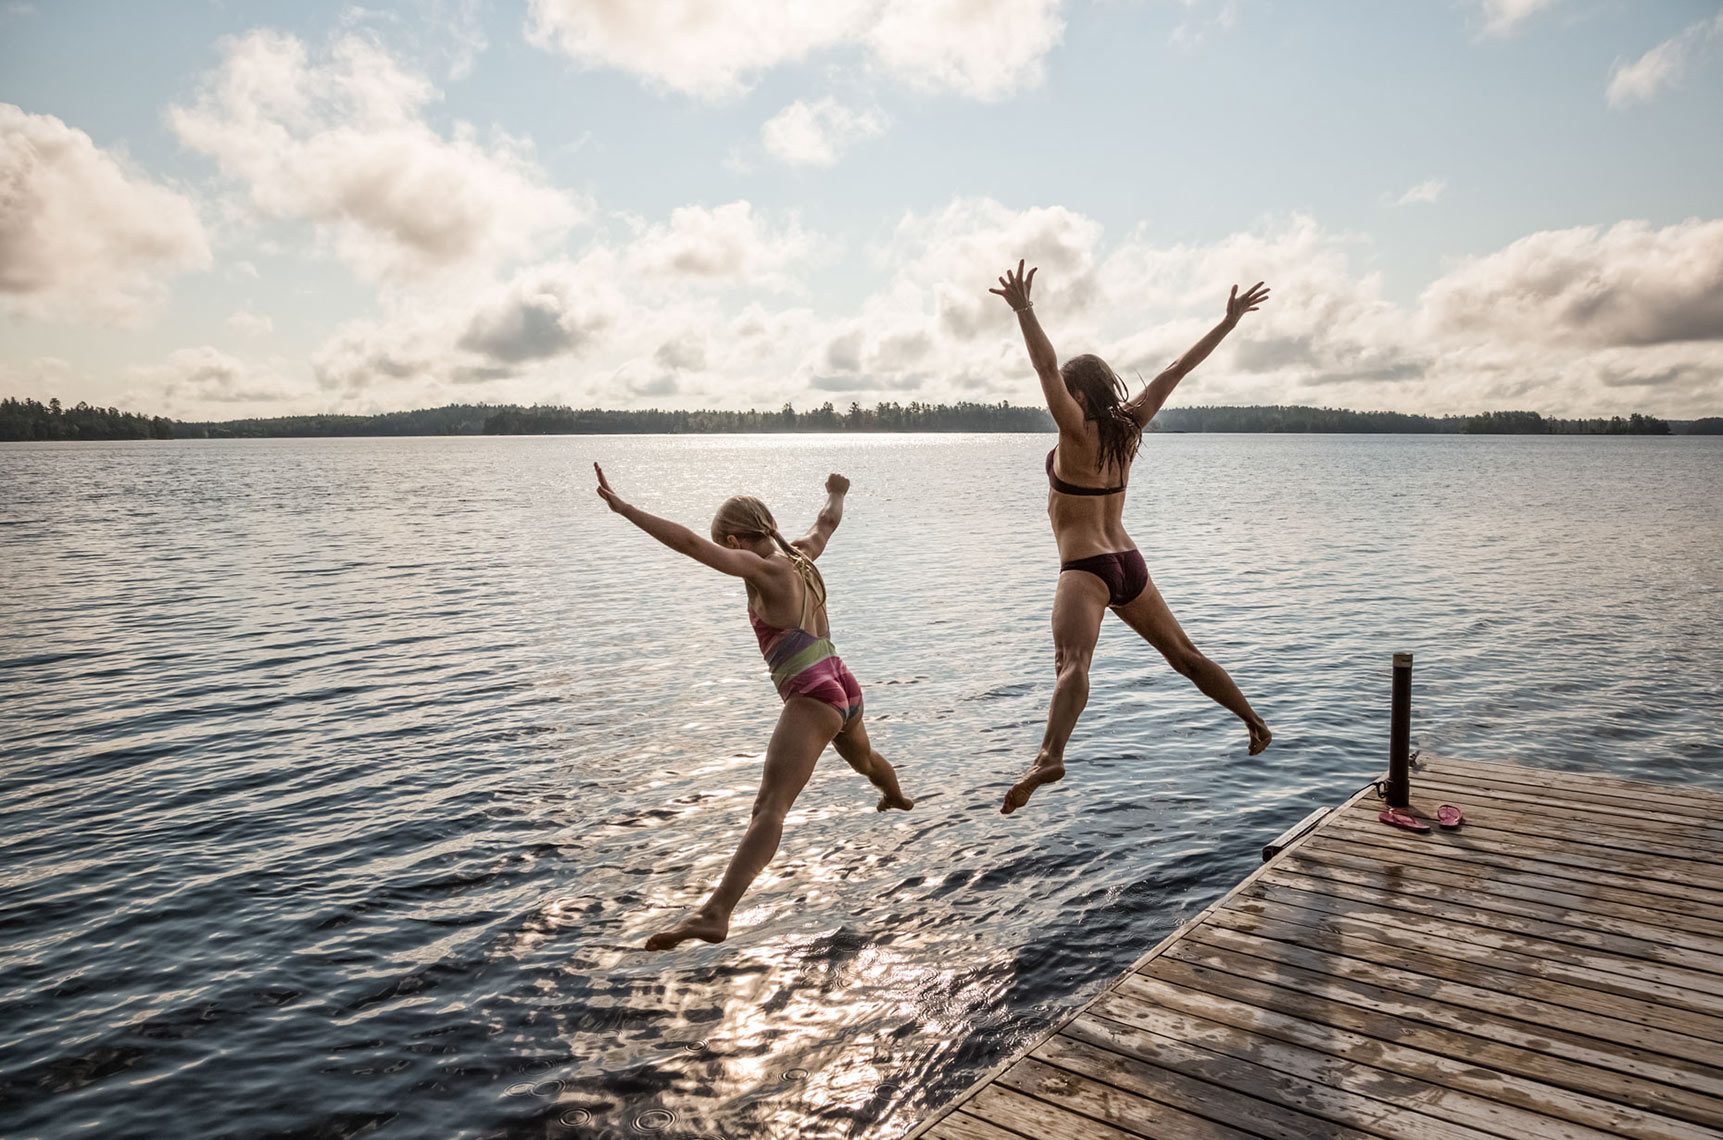 MOTHER-AND-A-DAUGHTER-JUMPING-OFF-A-DOCK